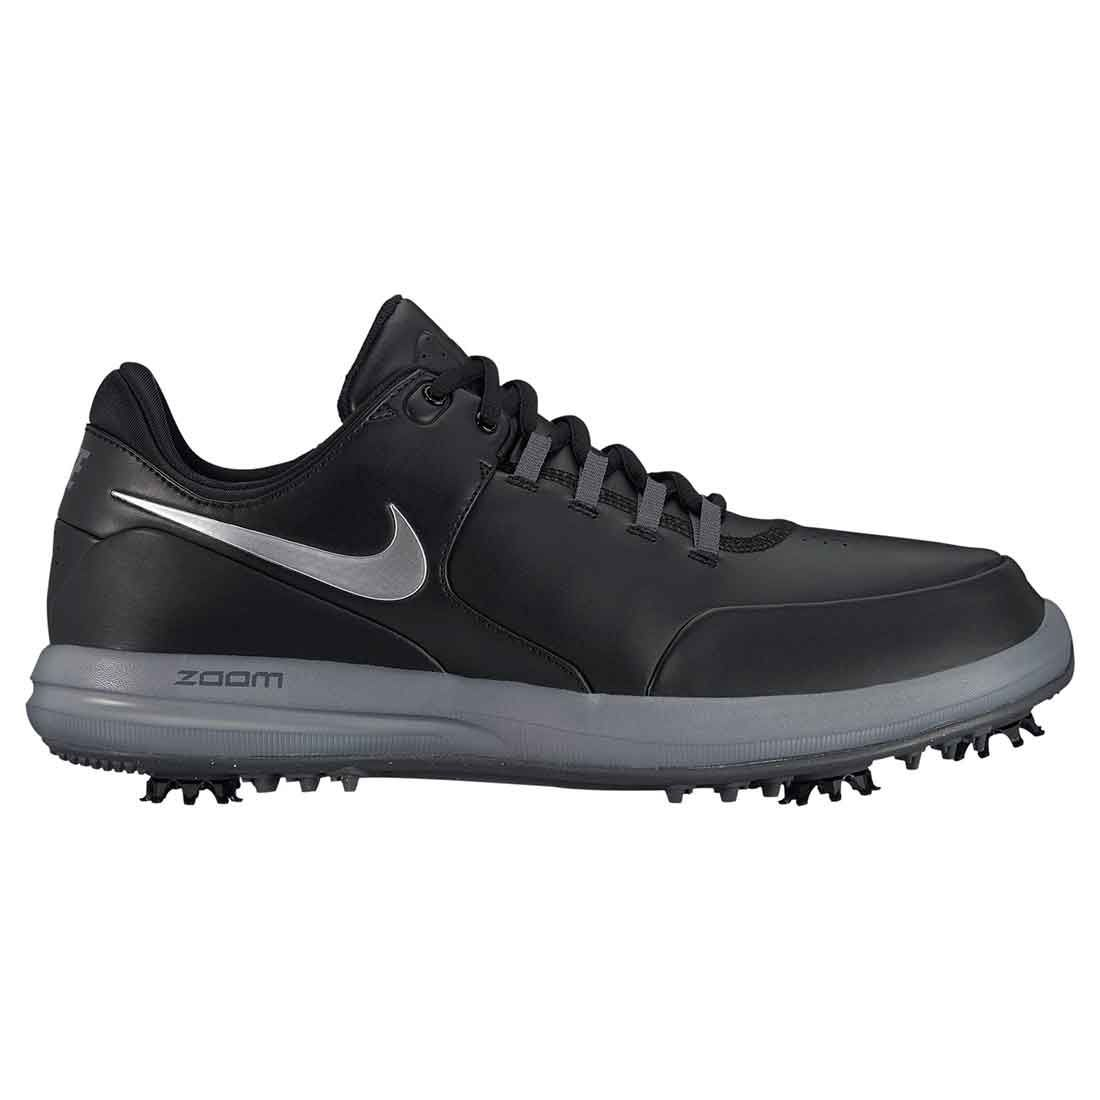 Nike Air Zoom Accurate Golf Shoes Black